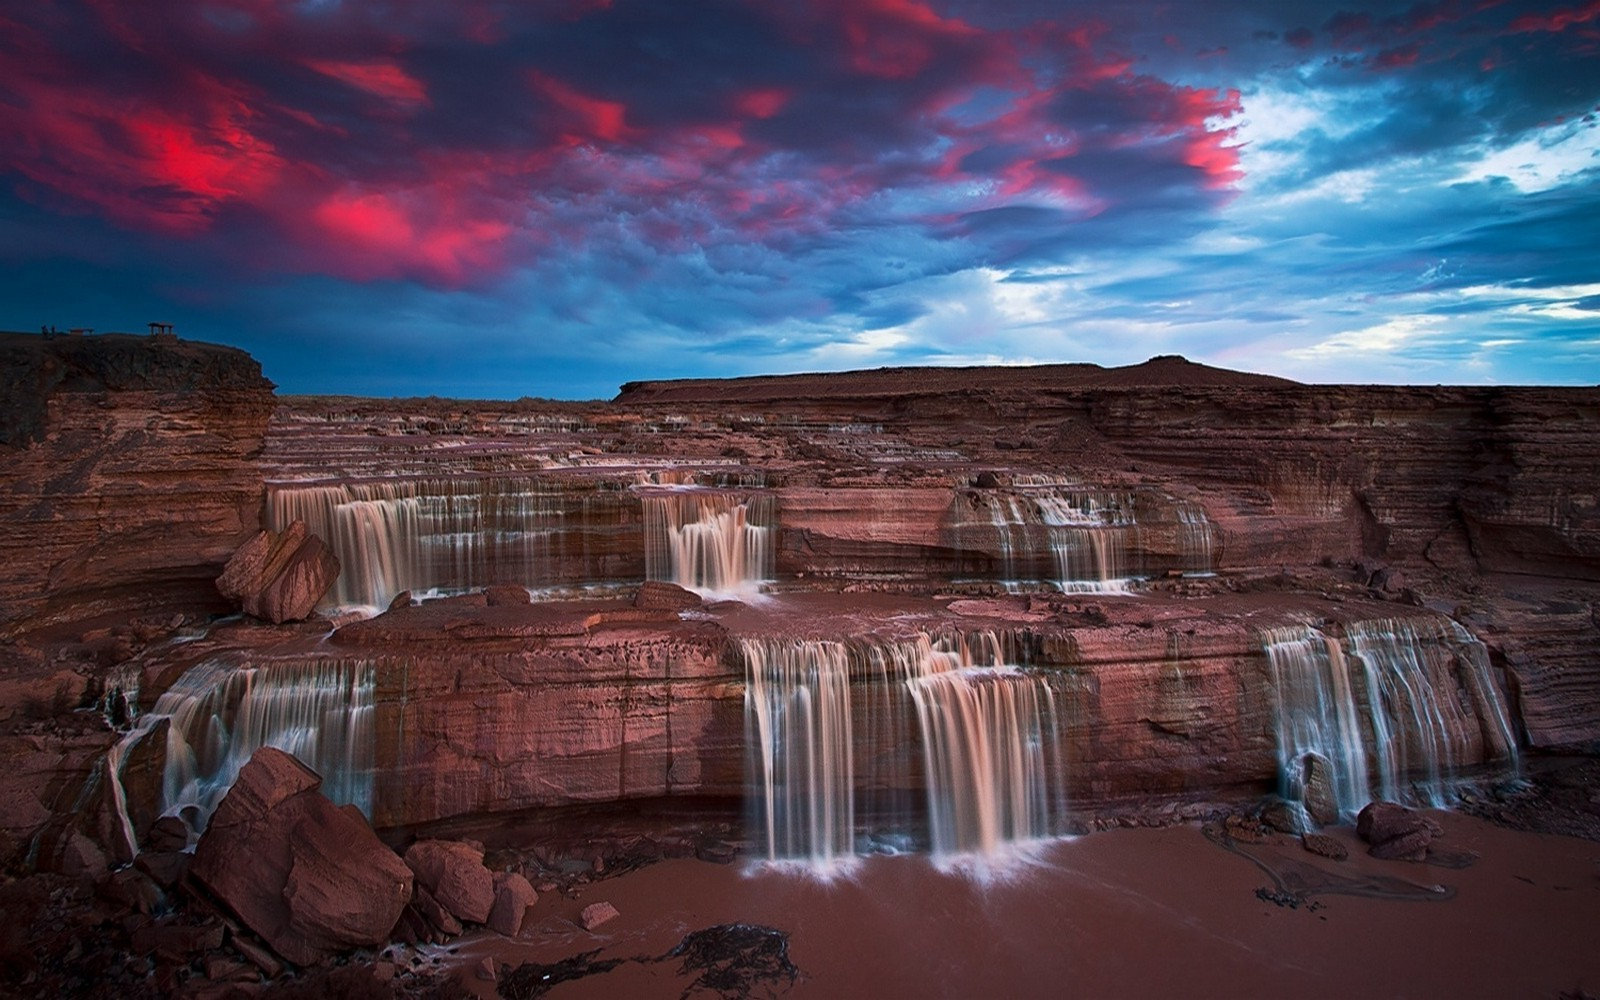 3d Love Wallpapers Download For Mobile Nature Landscape Waterfall Sunset Arizona Erosion